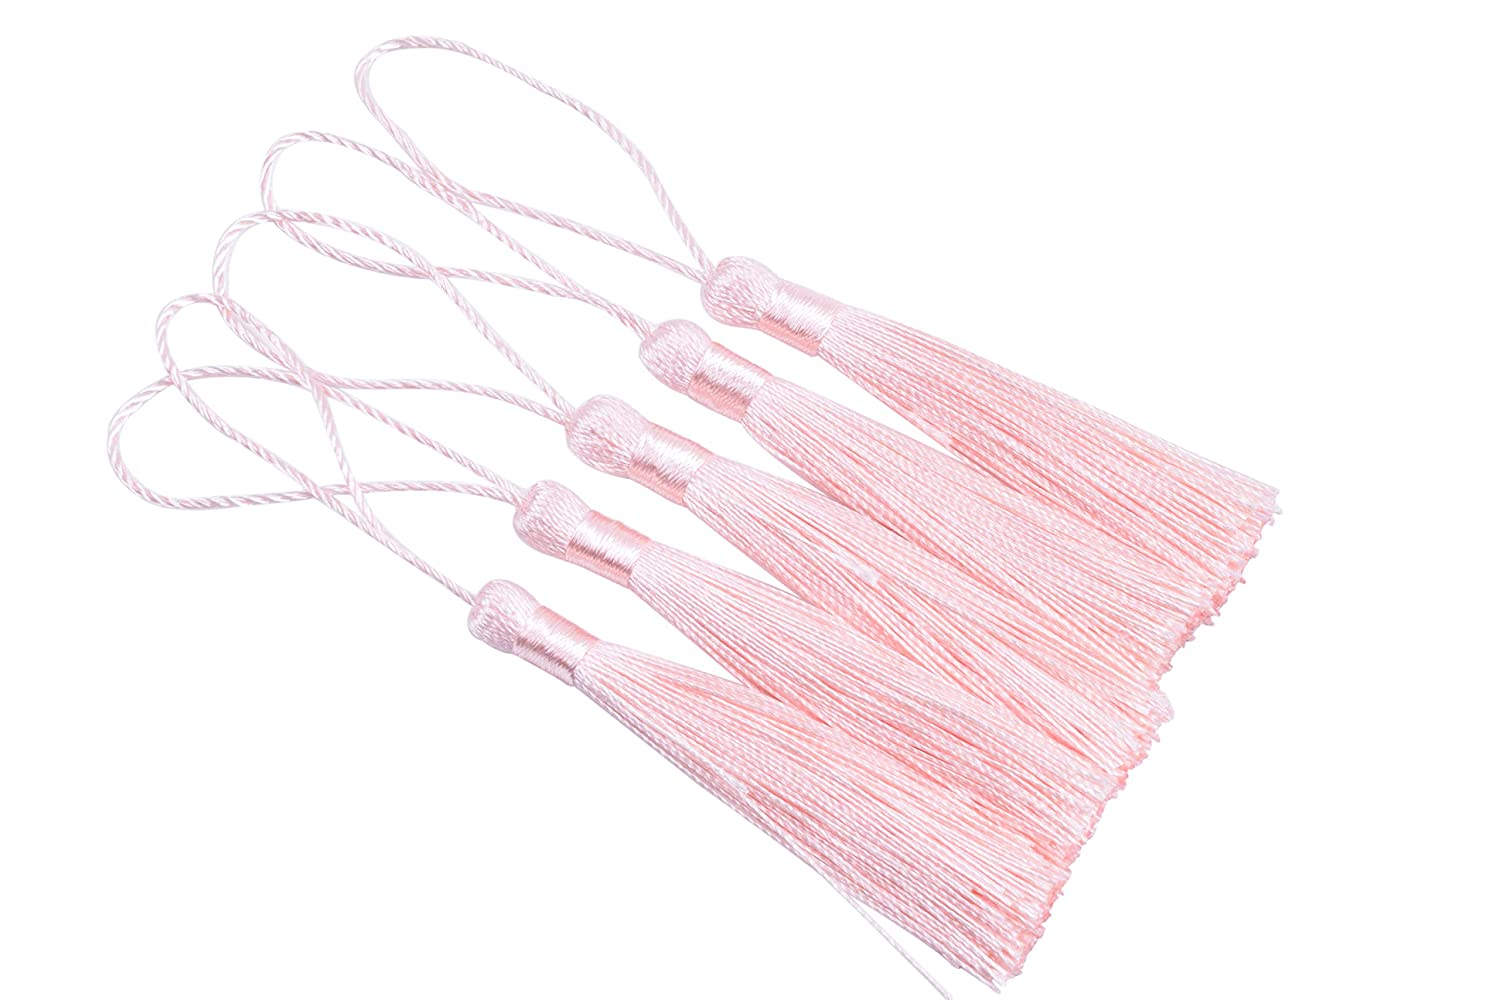 White Soft Craft Mini Tassels with Loops for Bookmarks Jewelry Making Decoration DIY Projects 3.5 KONMAY 20pcs Silky Handmade Tiny